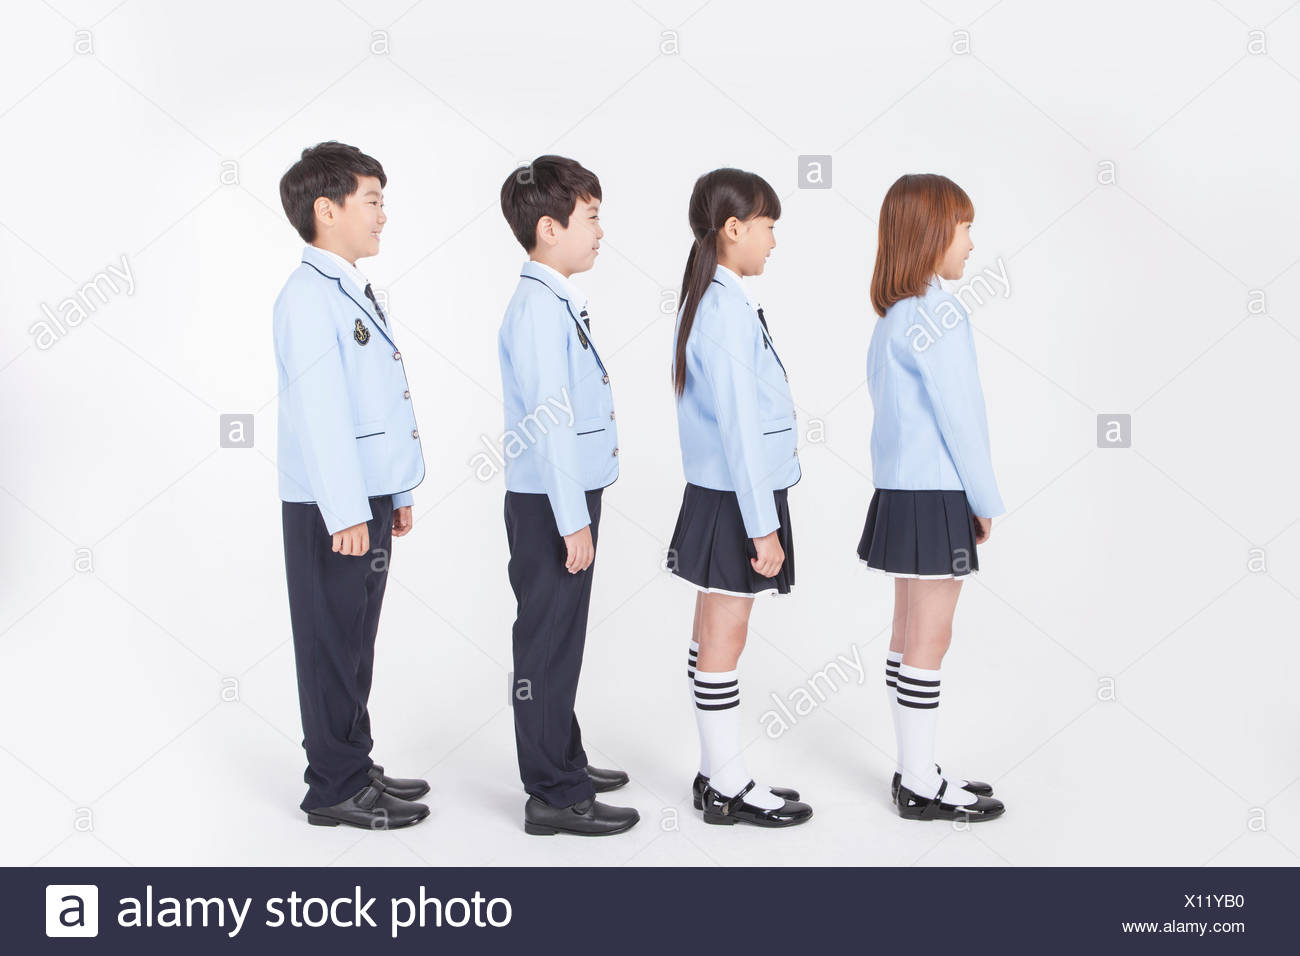 Students In School Uniforms Standing High Resolution Stock Photography And Images Alamy The severely cold weather, the unheated. alamy